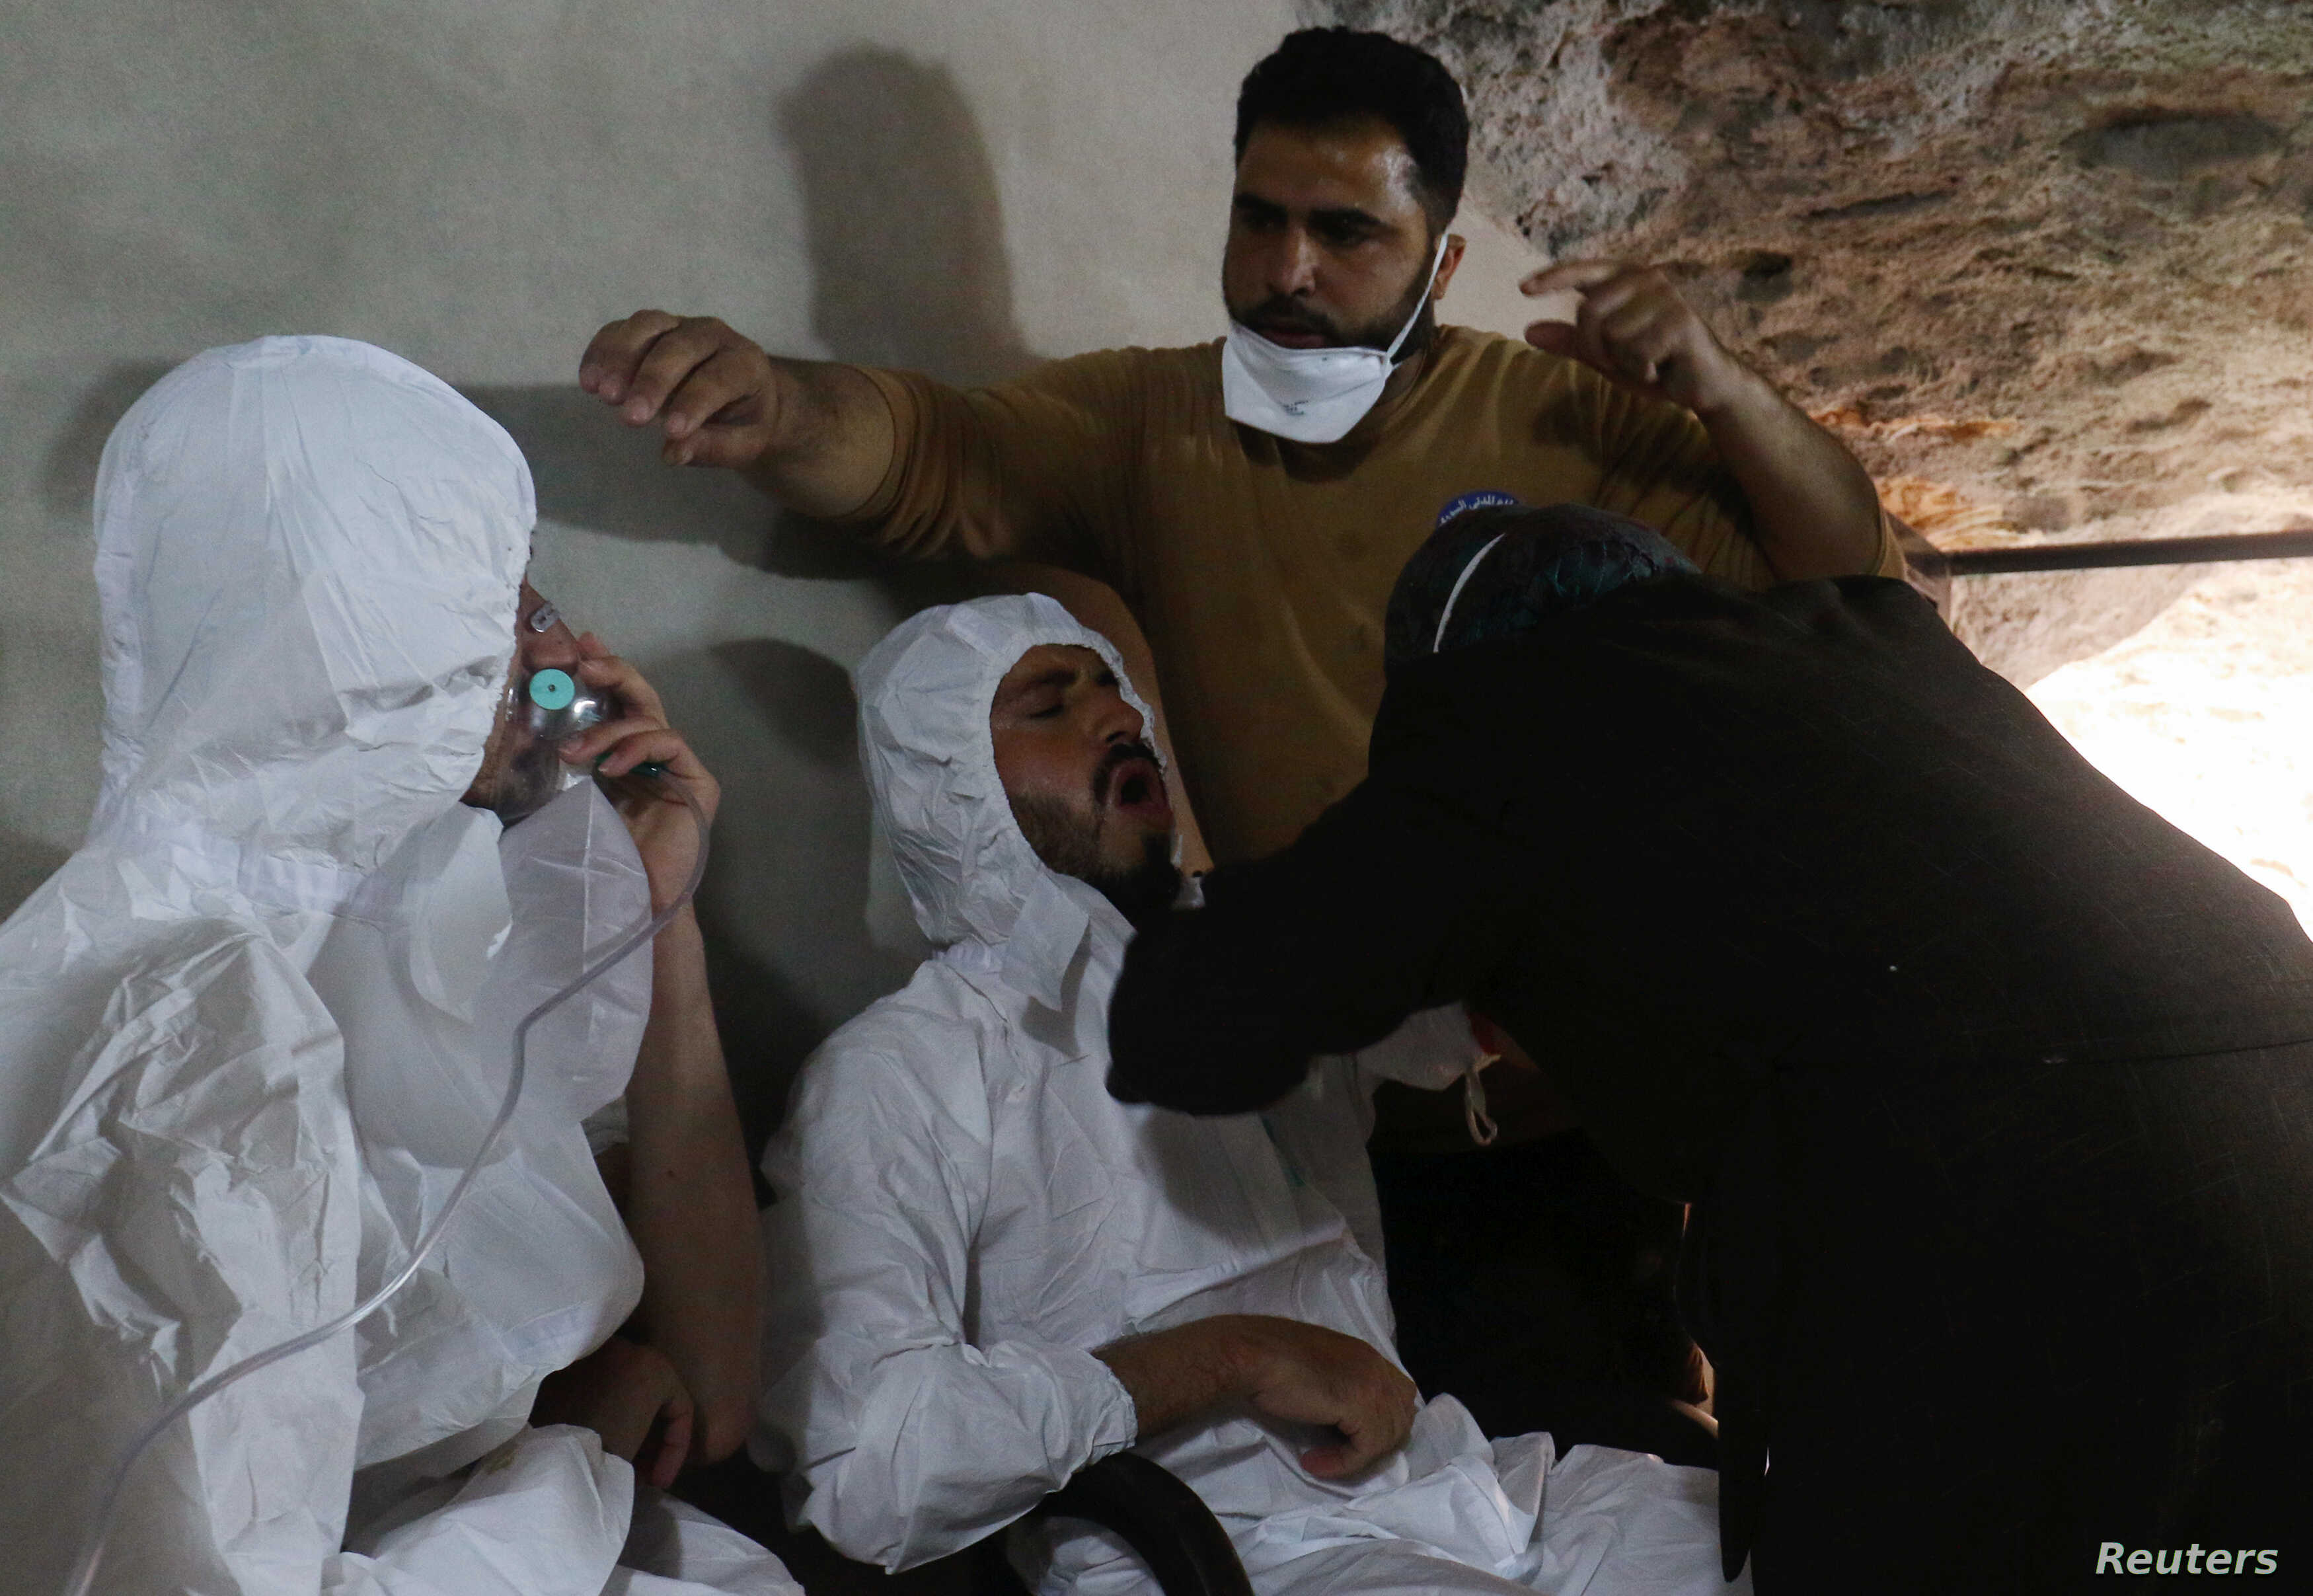 A man breathes through an oxygen mask as another one receives treatments, after what rescue workers described as a suspected gas attack in the town of Khan Sheikhoun in rebel-held Idlib, Syria, April 4, 2017.